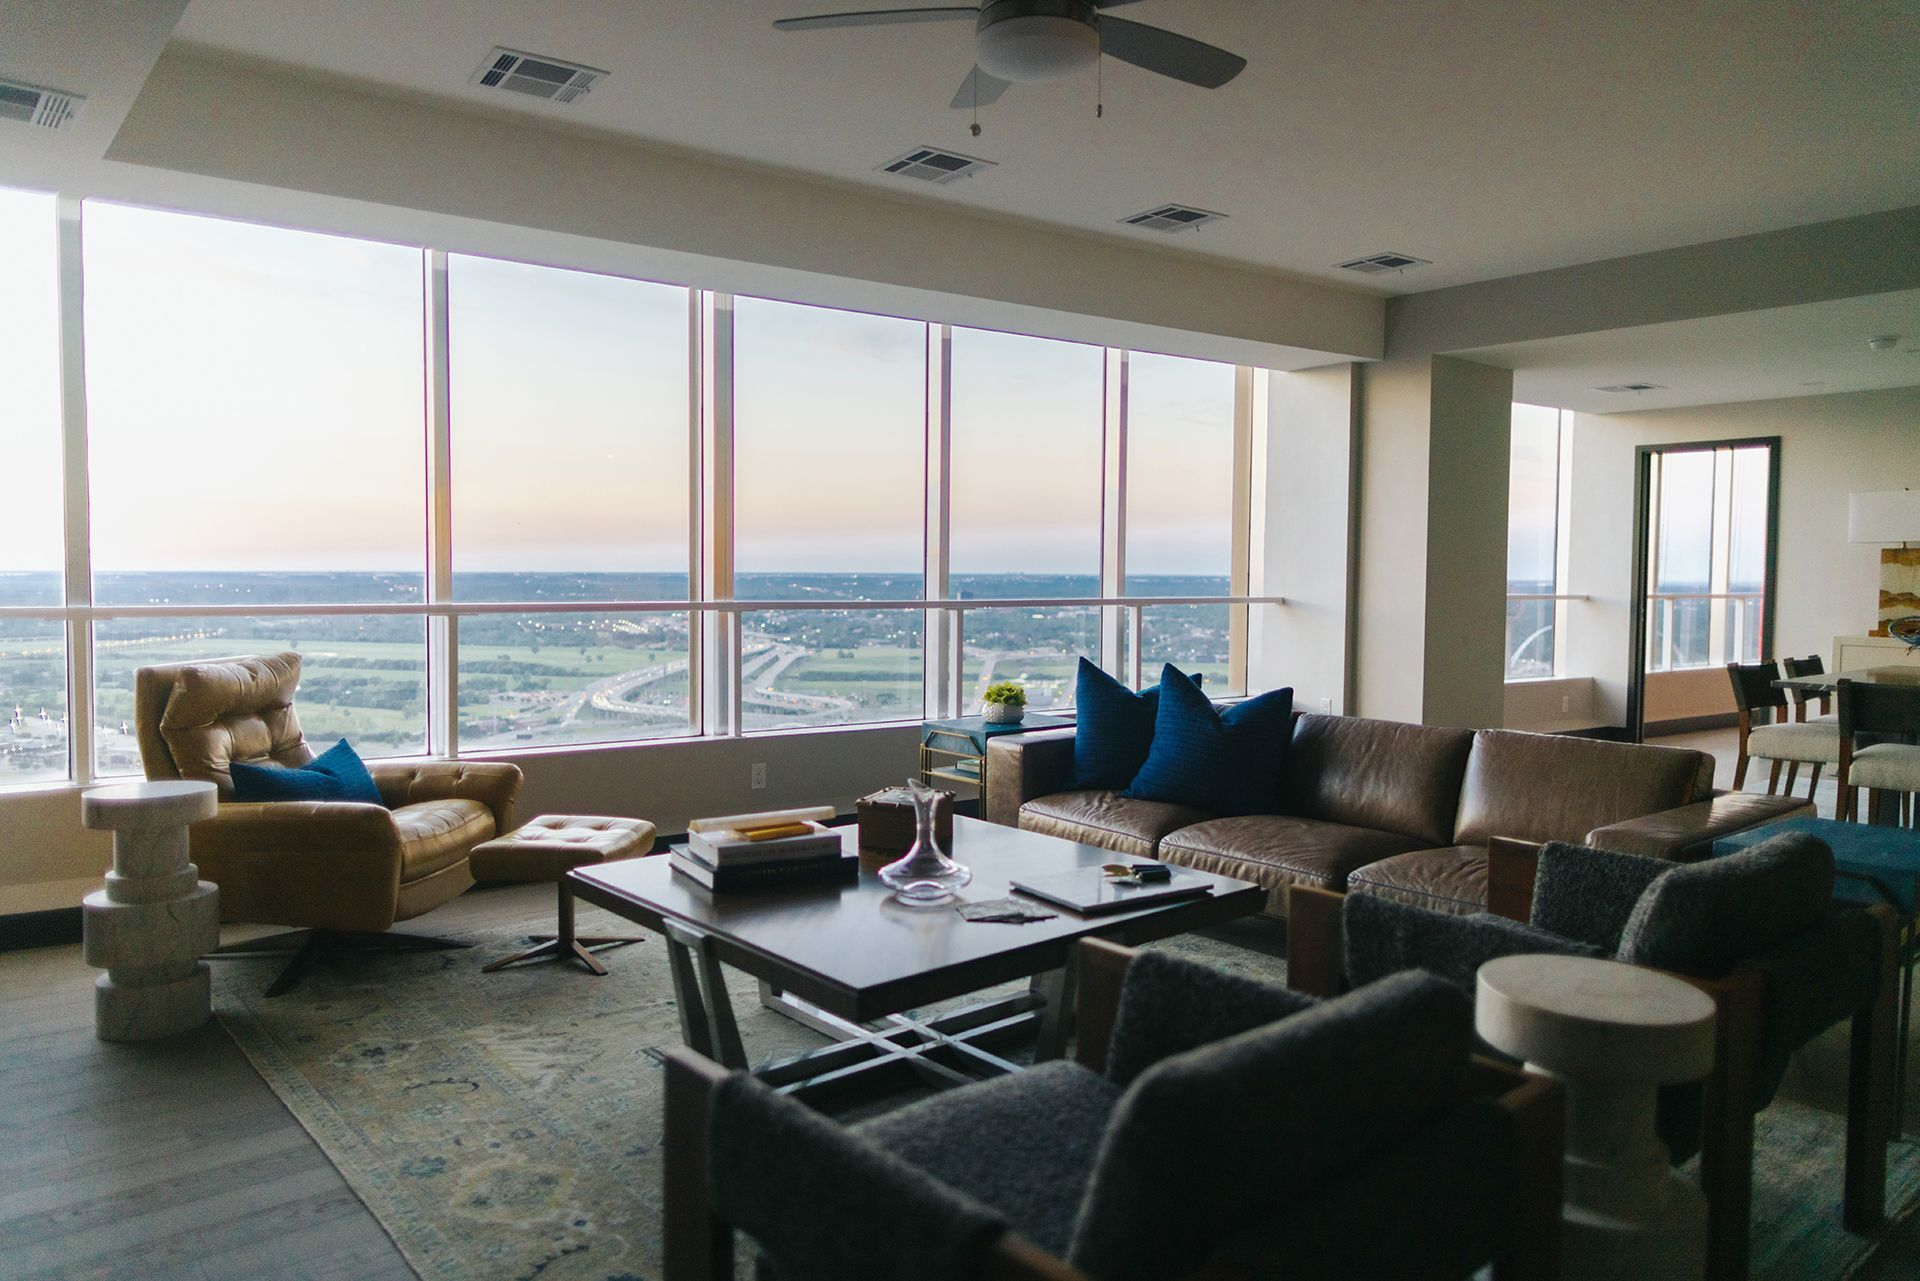 Apartment living area with seating and view of city